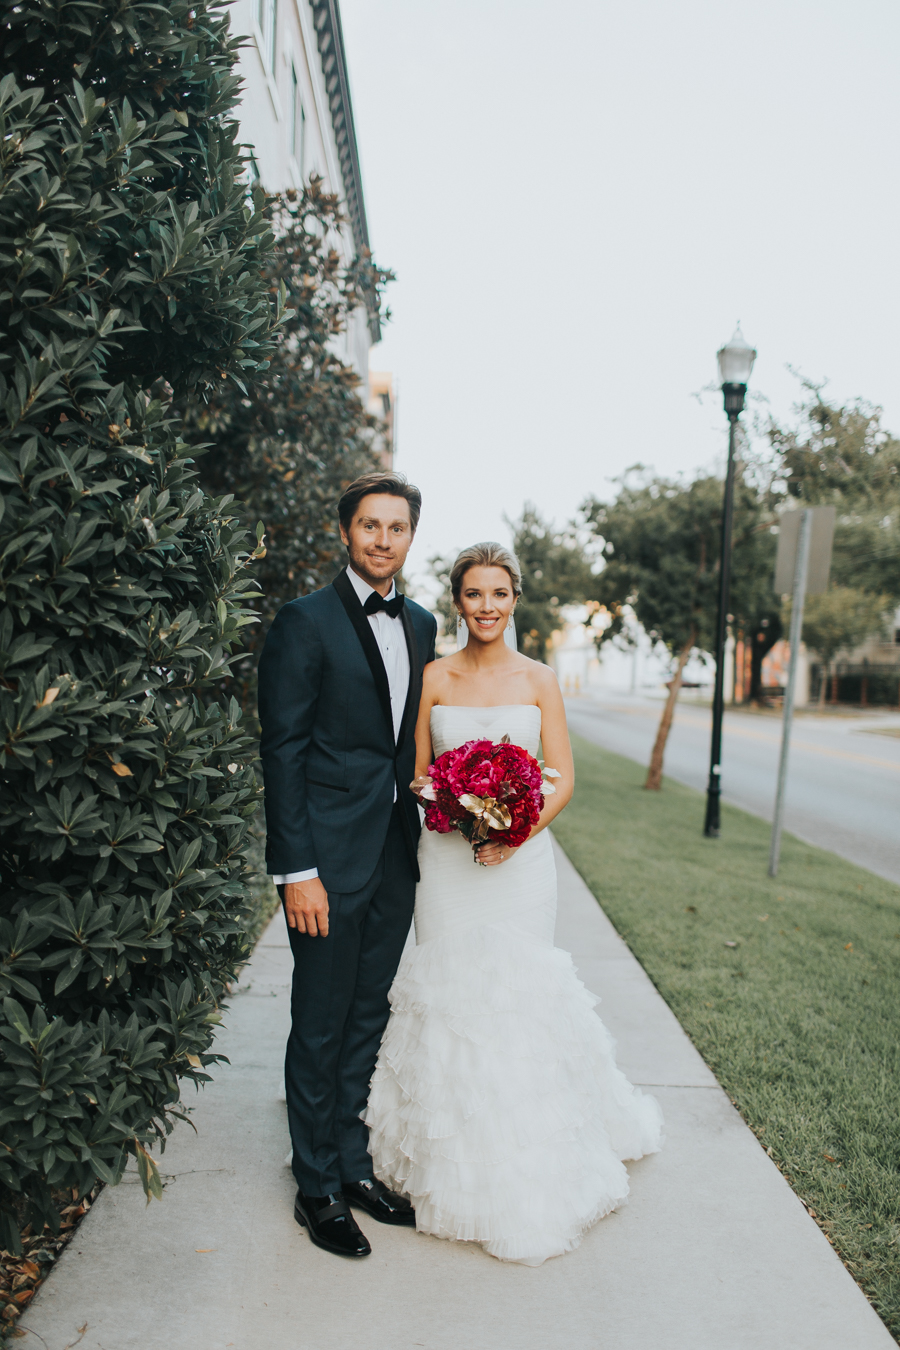 Loren and Alex Kuznetsov Gold and Burgundy wedding at Epicurean Tampa Royal Fall Wedding in Tampa Florida Inside Weddings MD Events Tampa-114.jpg